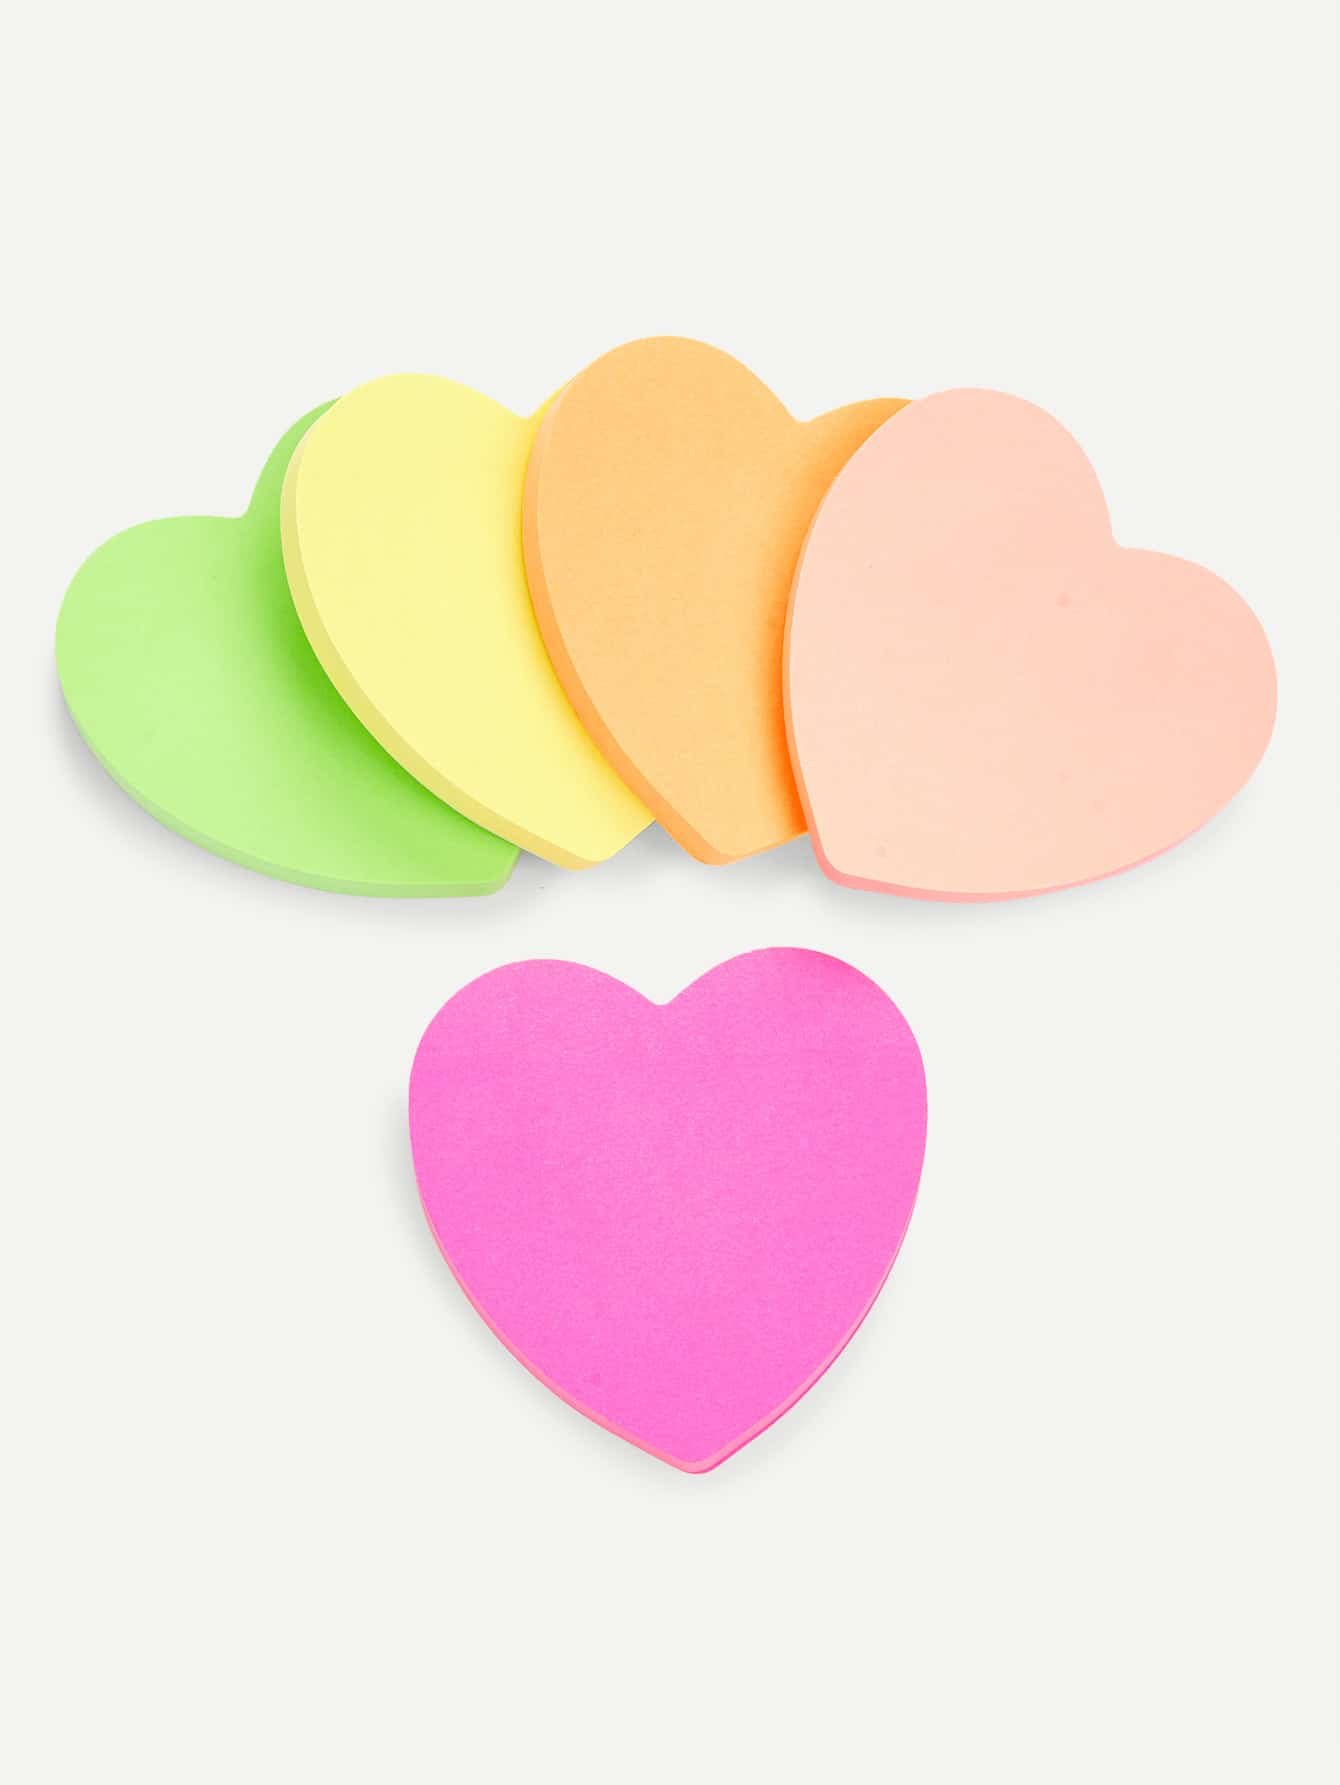 Mixed Color Heart Sticky Notes 1pc lot cute rabbit design memo pad office accessories memos sticky notes school stationery post it supplies tt 2766